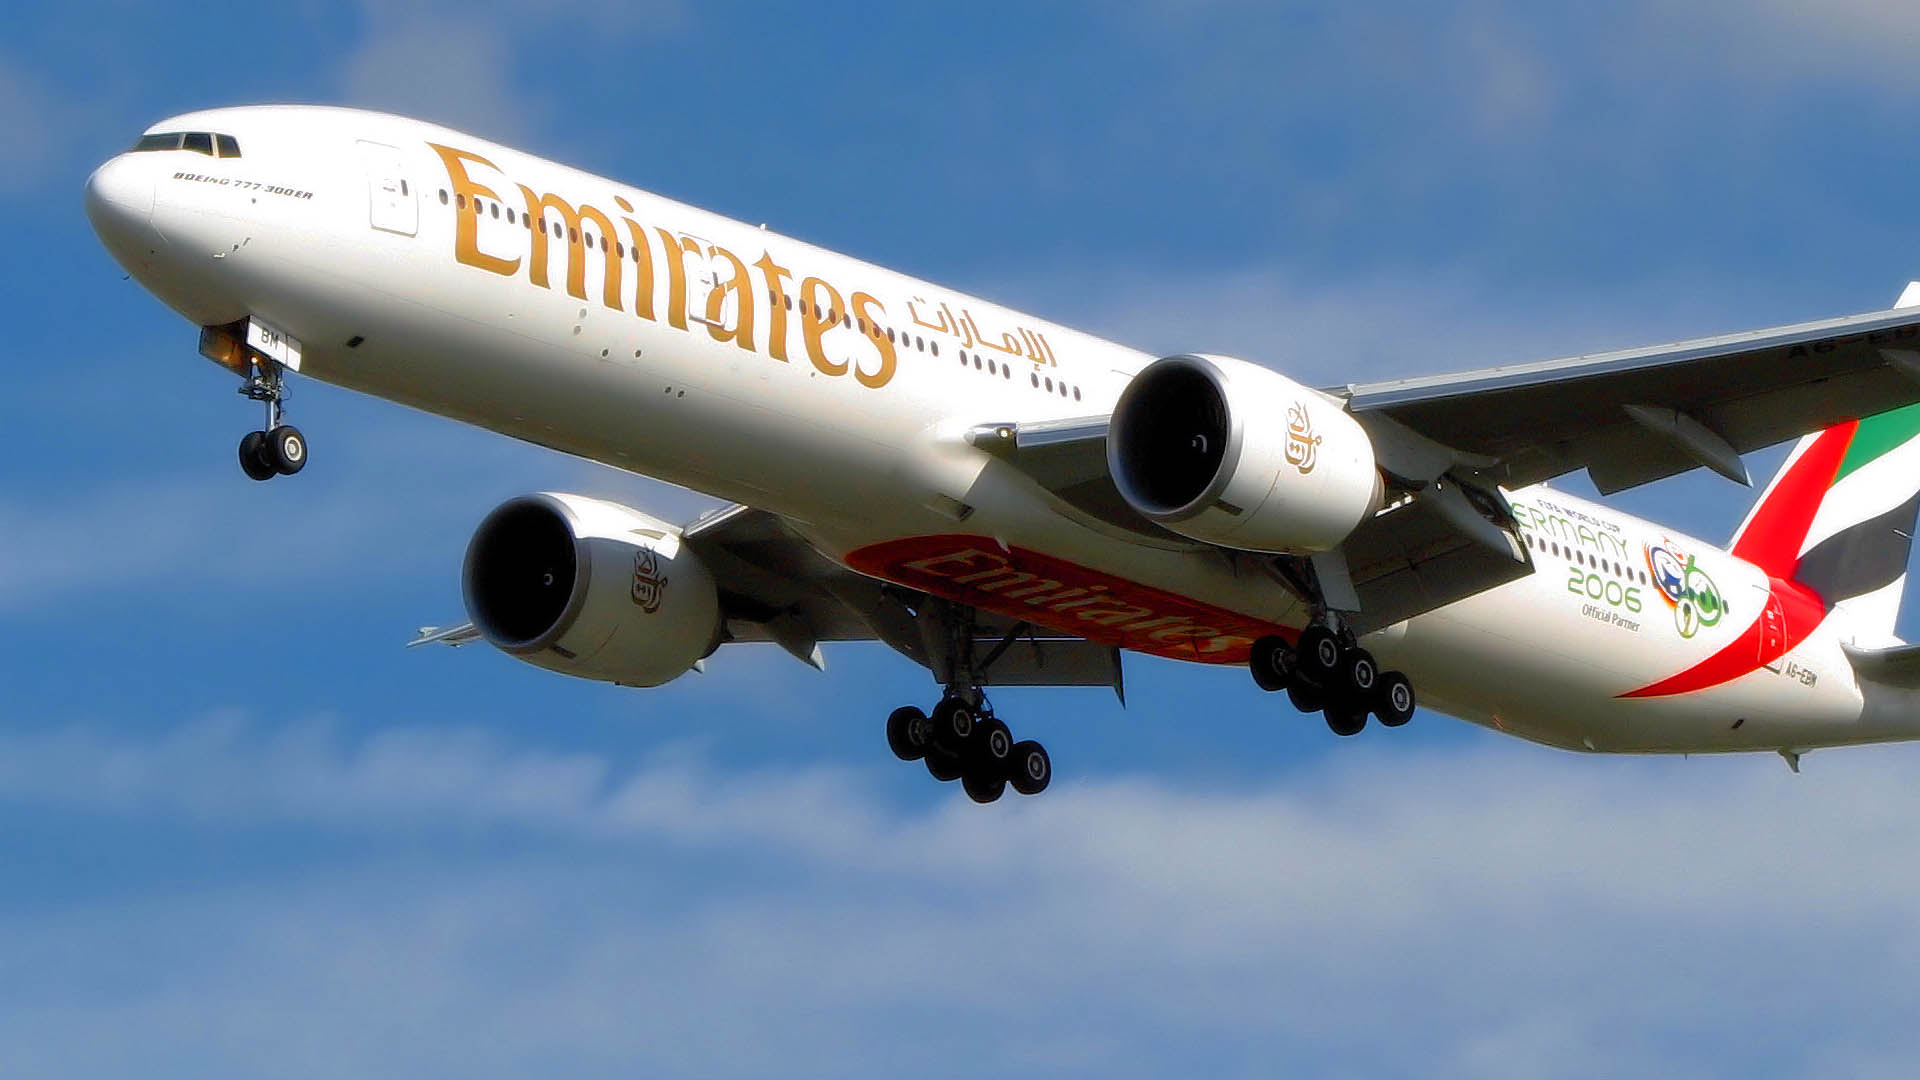 Emirates Airlines Air Bus A380